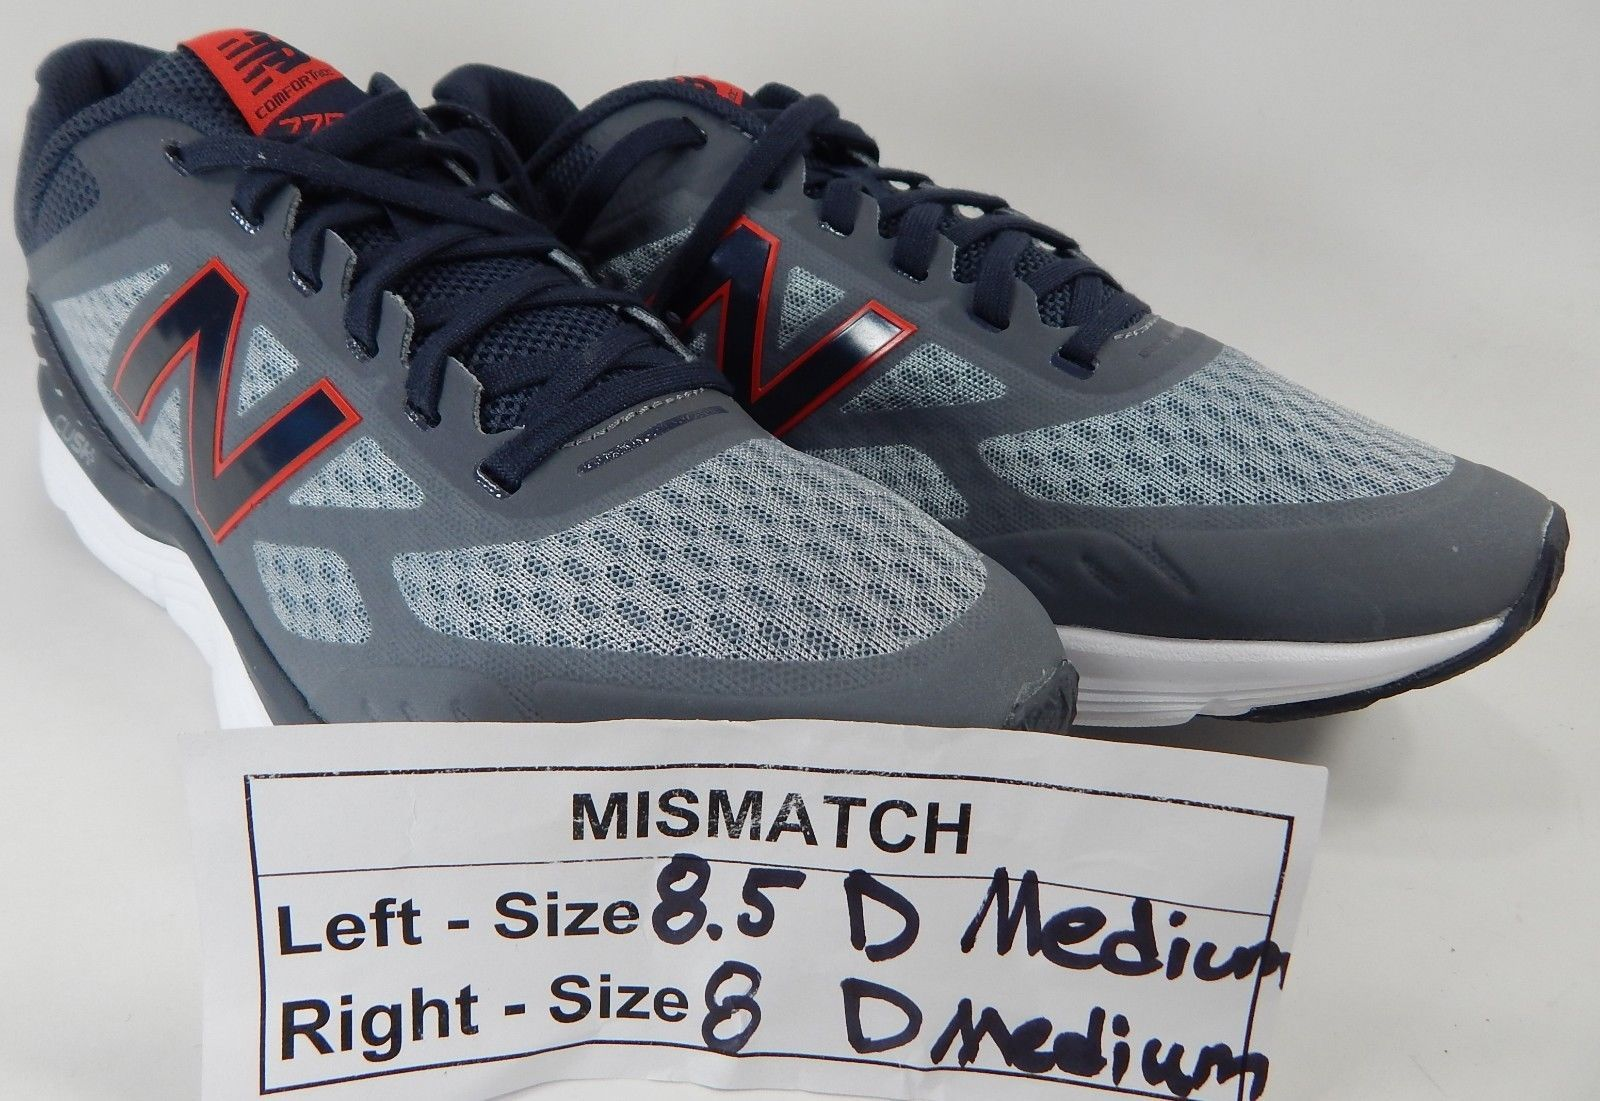 MISMATCH New Balance 775 v3 Size 8.5 M Left & 8 M Right Men's Running Shoes